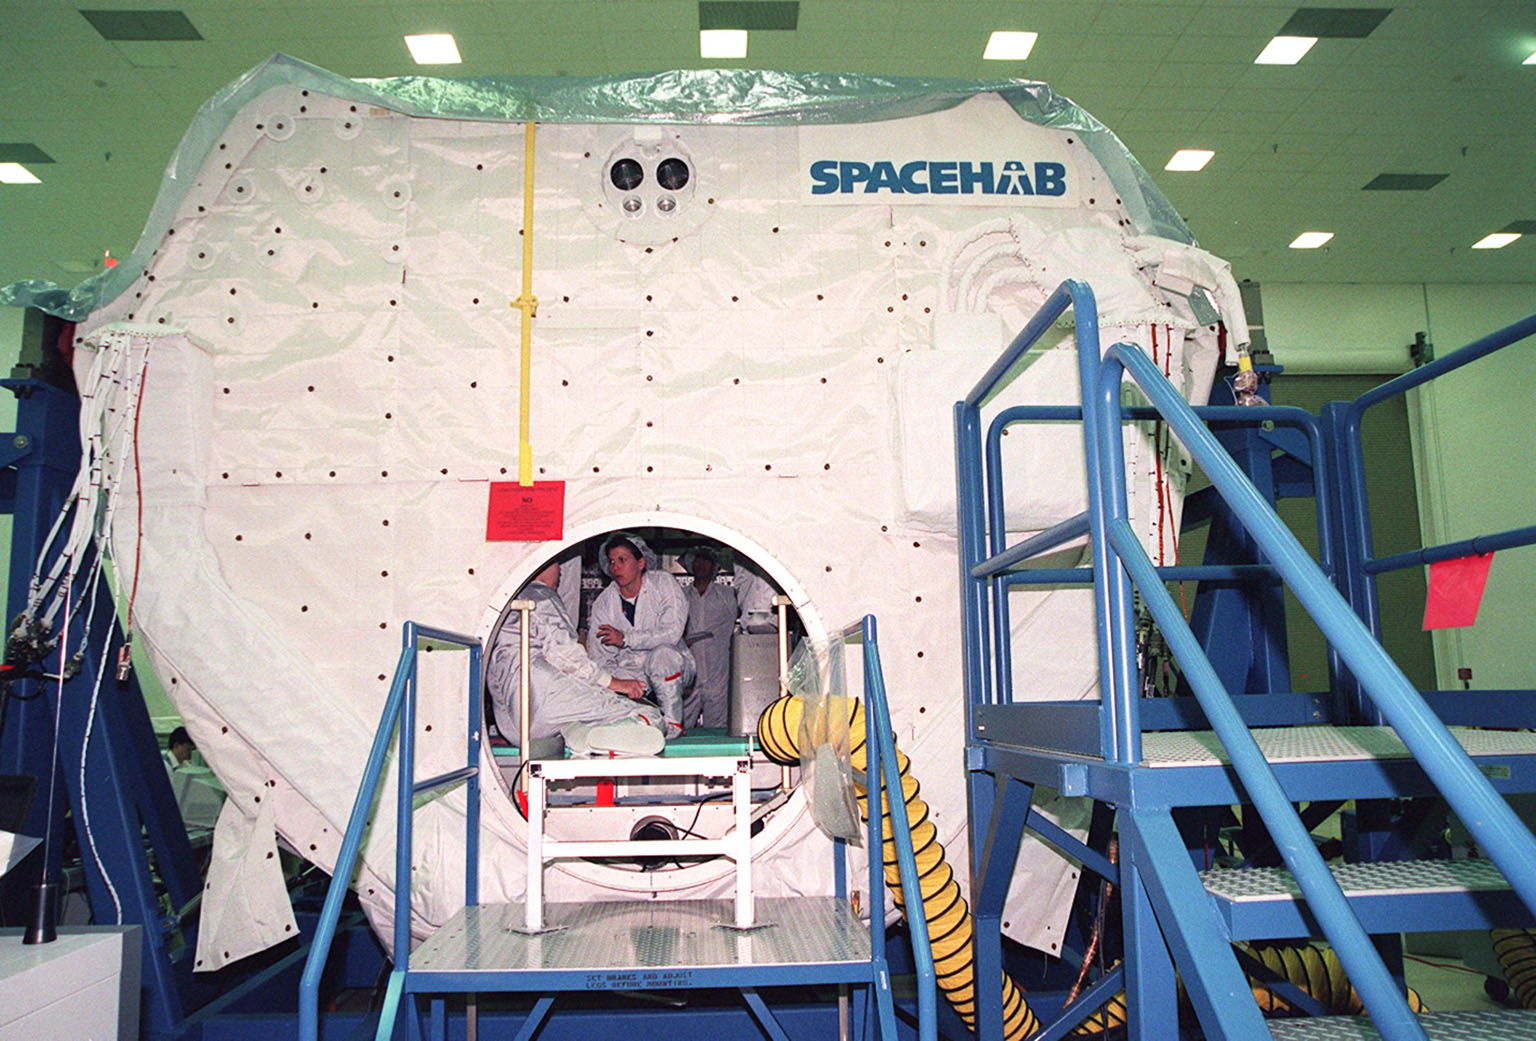 KENNEDY SPACE CENTER, FLA. -- As part of Crew Equipment Interface Test (CEIT) activities at SPACEHAB, in Cape Canaveral, Fla., members of the STS-101 crew spend time inside the SPACEHAB double module to become familiar with equipment for their mission to the International Space Station. The crew of seven comprises Commander James Halsell, Pilot Scott Horowitz, and Mission Specialists Mary Ellen Weber, James Voss, Jeffrey Williams, Susan Helms and Yuri Usachev. The STS-101 crew will be responsible for preparing the Space Station for the arrival of the Zvezda Service Module, expected to be launched by Russia in July 2000. Also, the crew will conduct one space walk to perform maintenance on the Space Station and deliver logistics and supplies. This will be the third assembly flight for the Space Station. STS-101 is scheduled to launch no earlier than April 13 from Launch Pad 39A